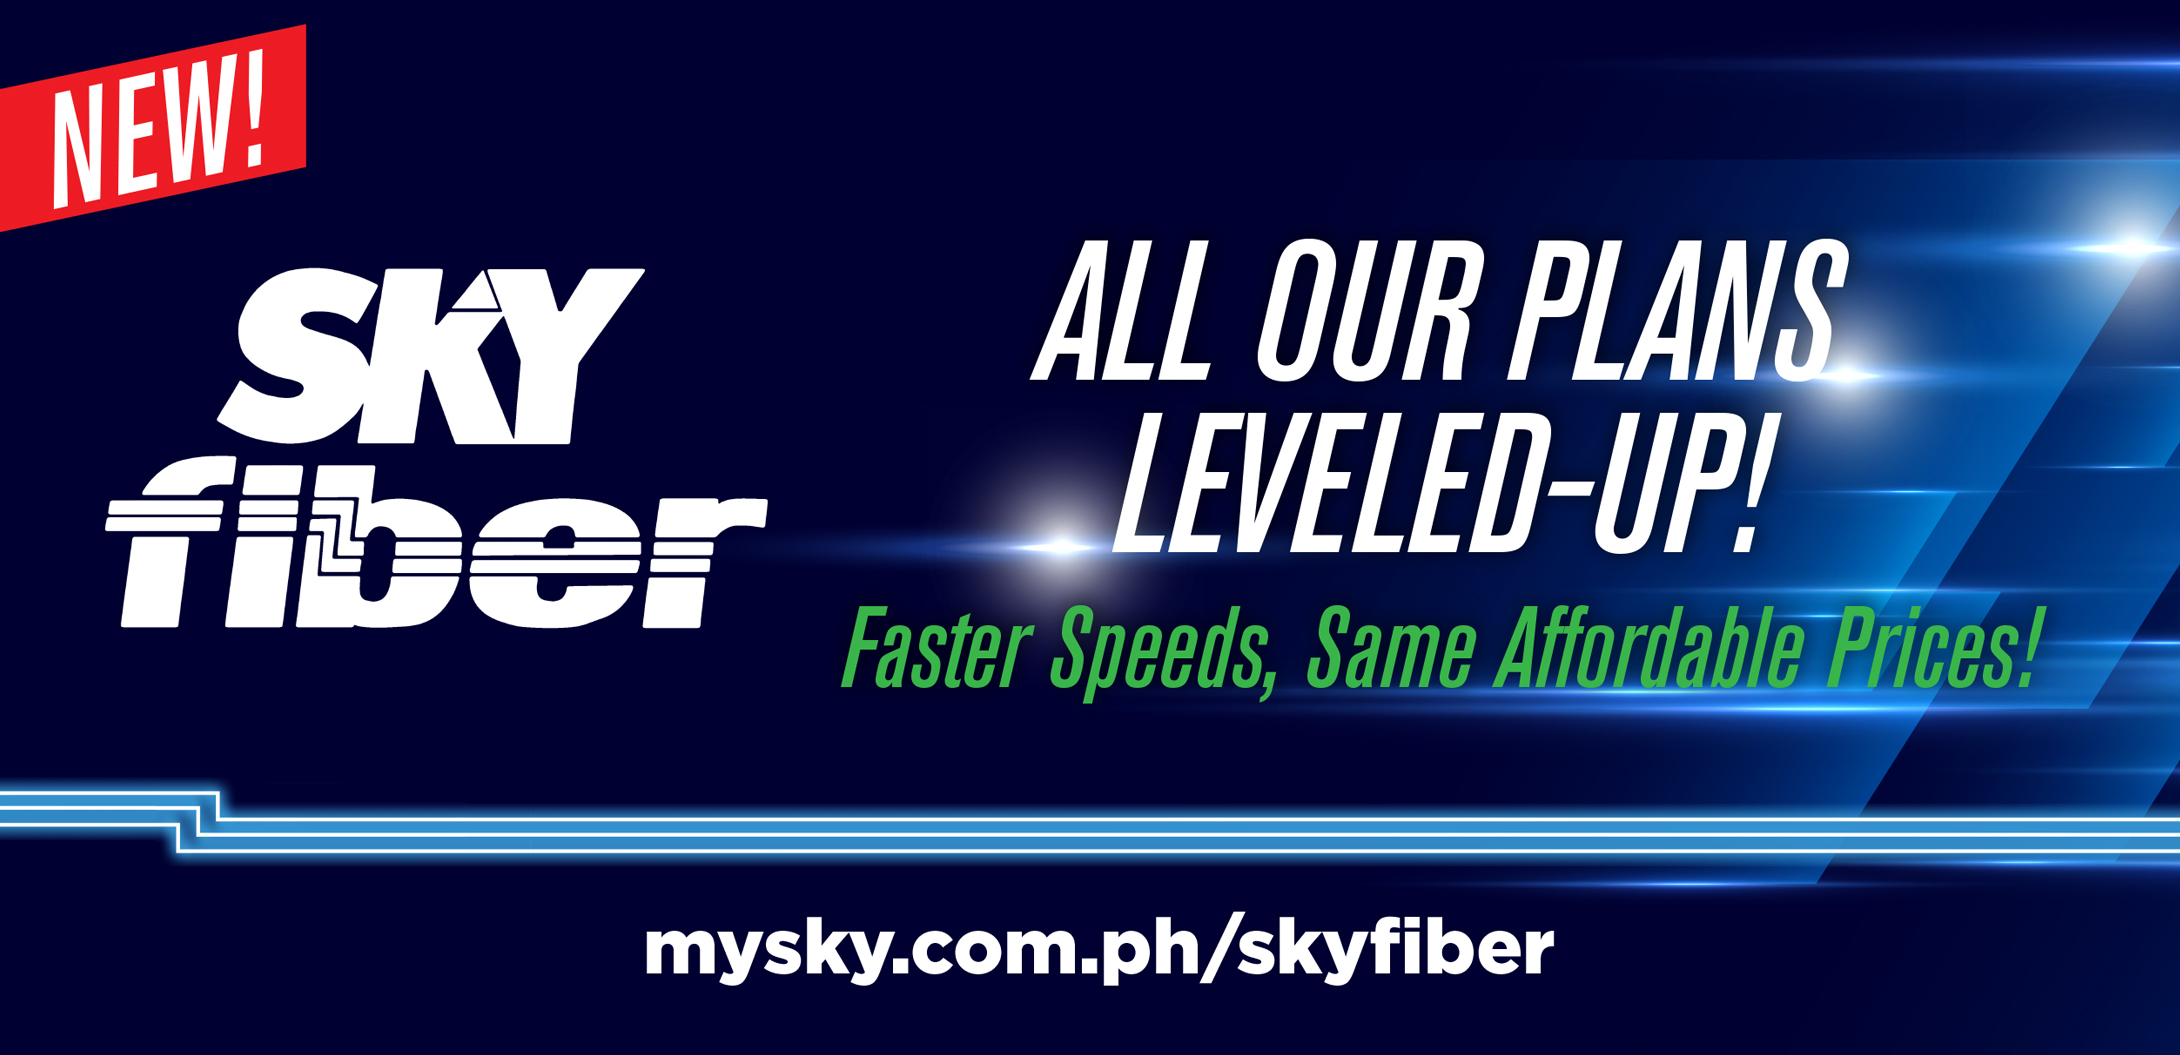 SKY Fiber offers leveled up speeds  at the same affordable rates